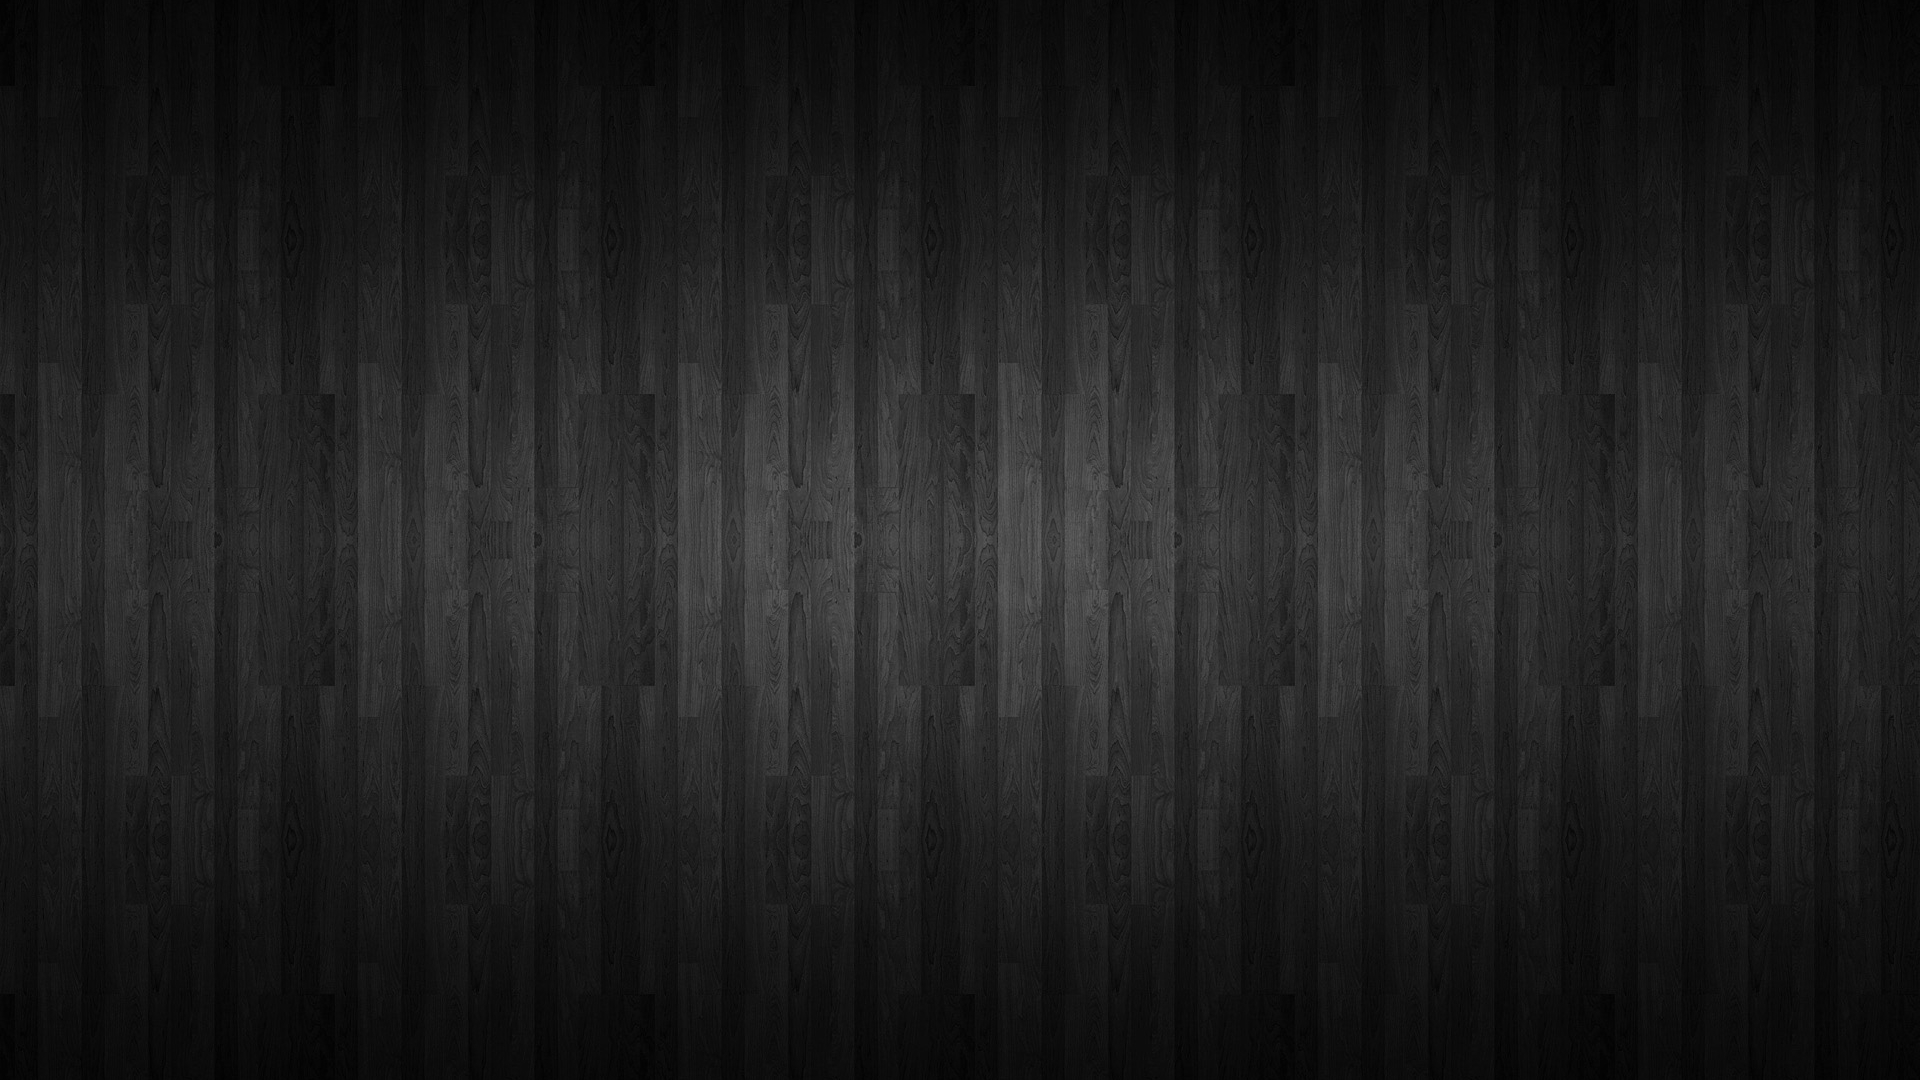 dark hardwood floor pattern abstract. Black Bedroom Furniture Sets. Home Design Ideas